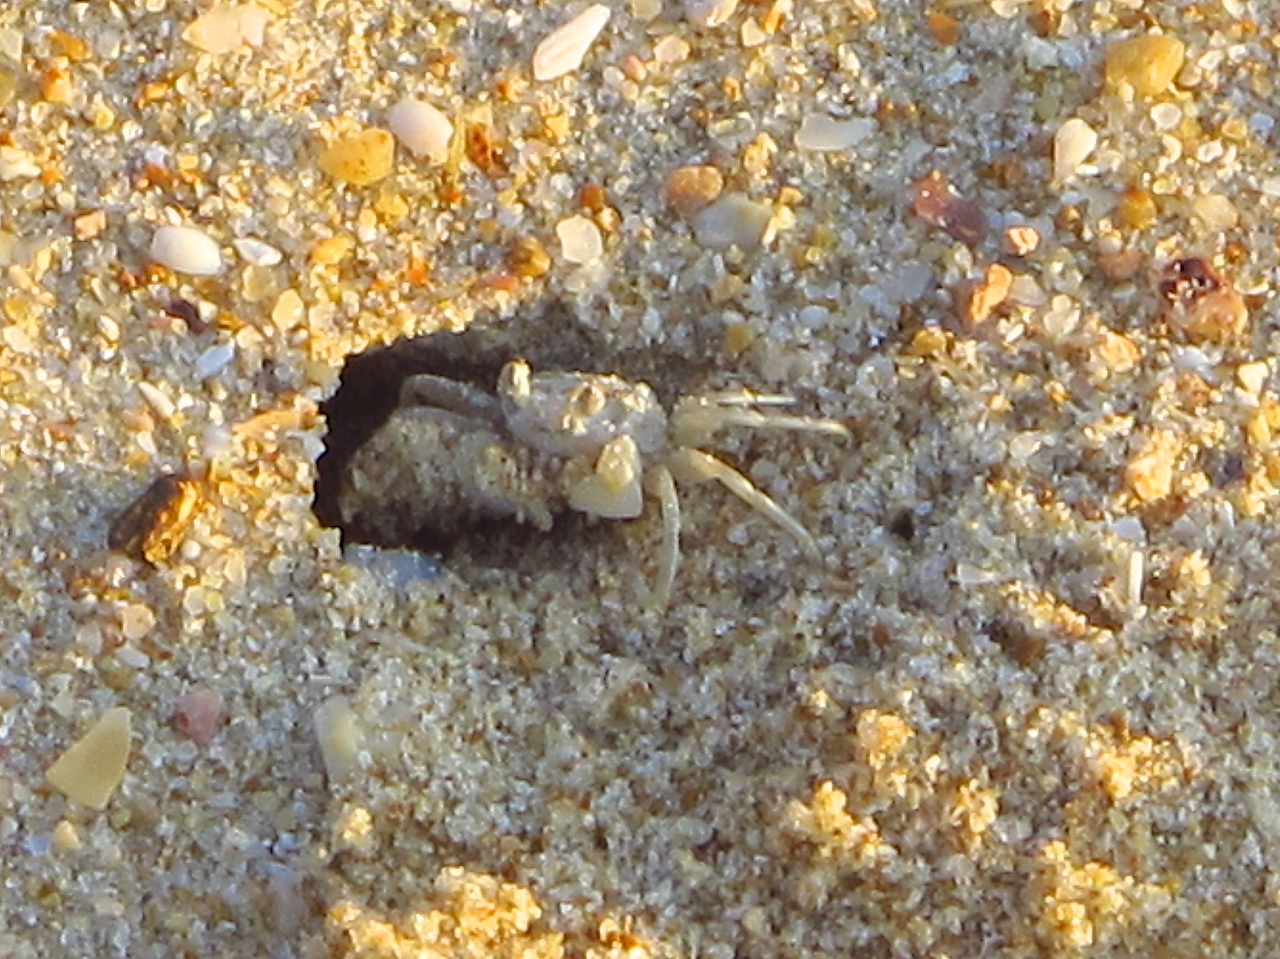 Ghost crabs are about as large as a quarter.